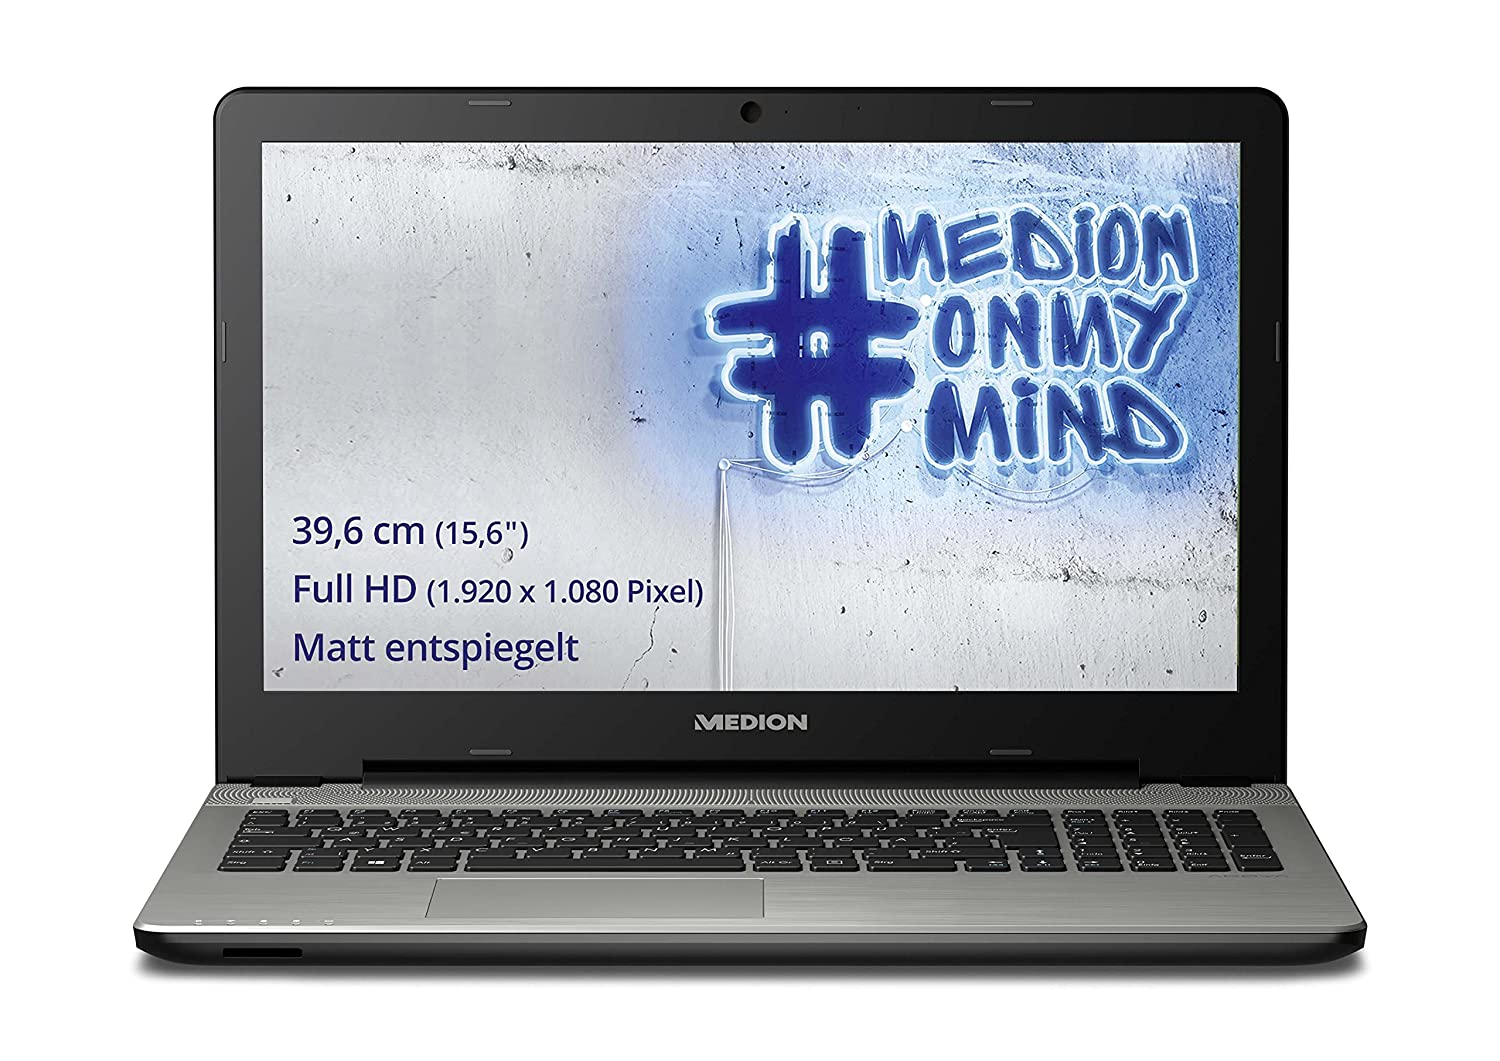 Notebook Angebot: MEDION AKOYA E6415